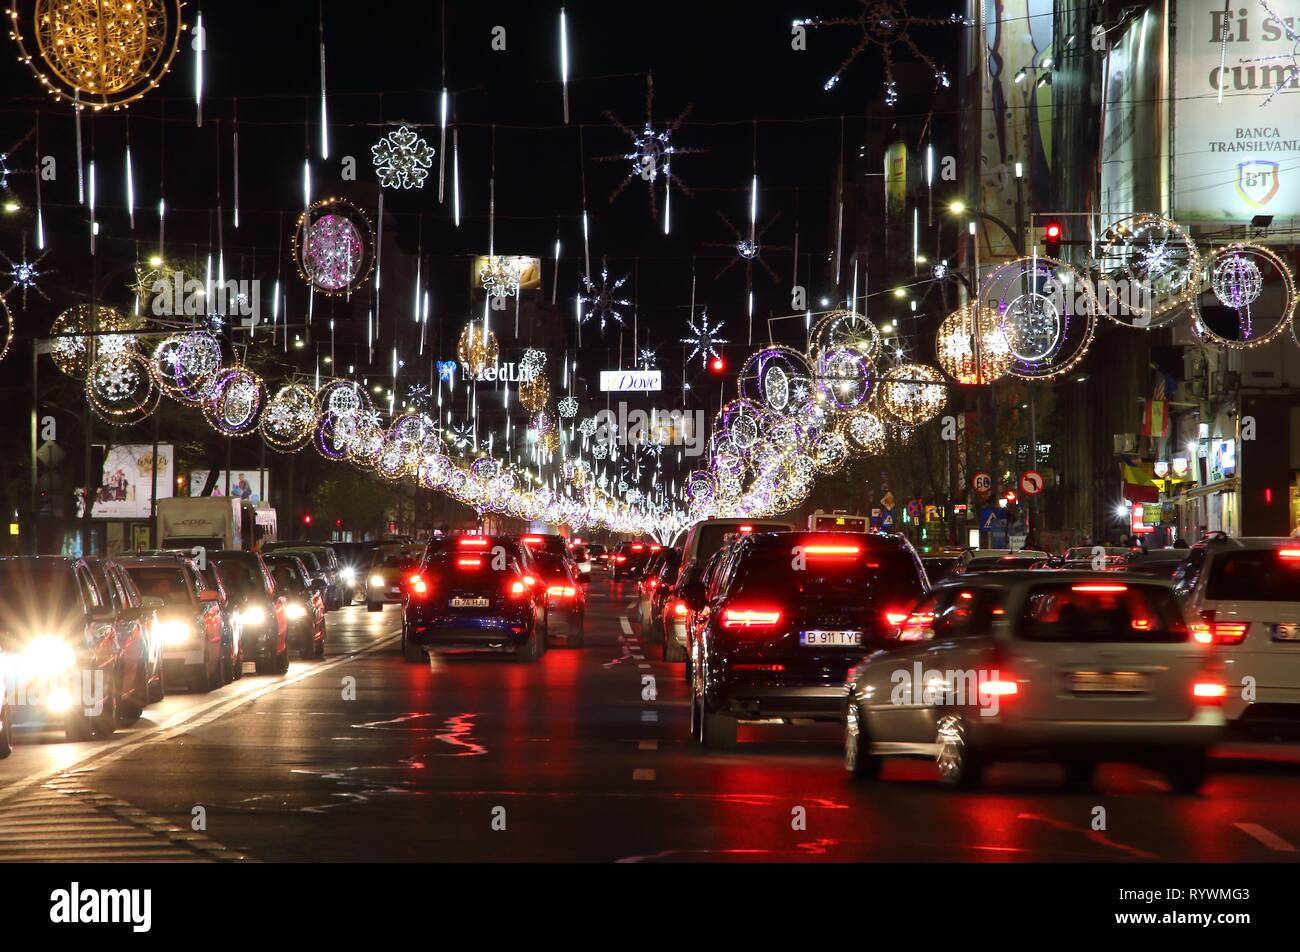 Bucharest, Romania - December 03, 2016: Cars are trapped in traffic jam because of the large number of people who went out with their cars to see the  - Stock Image